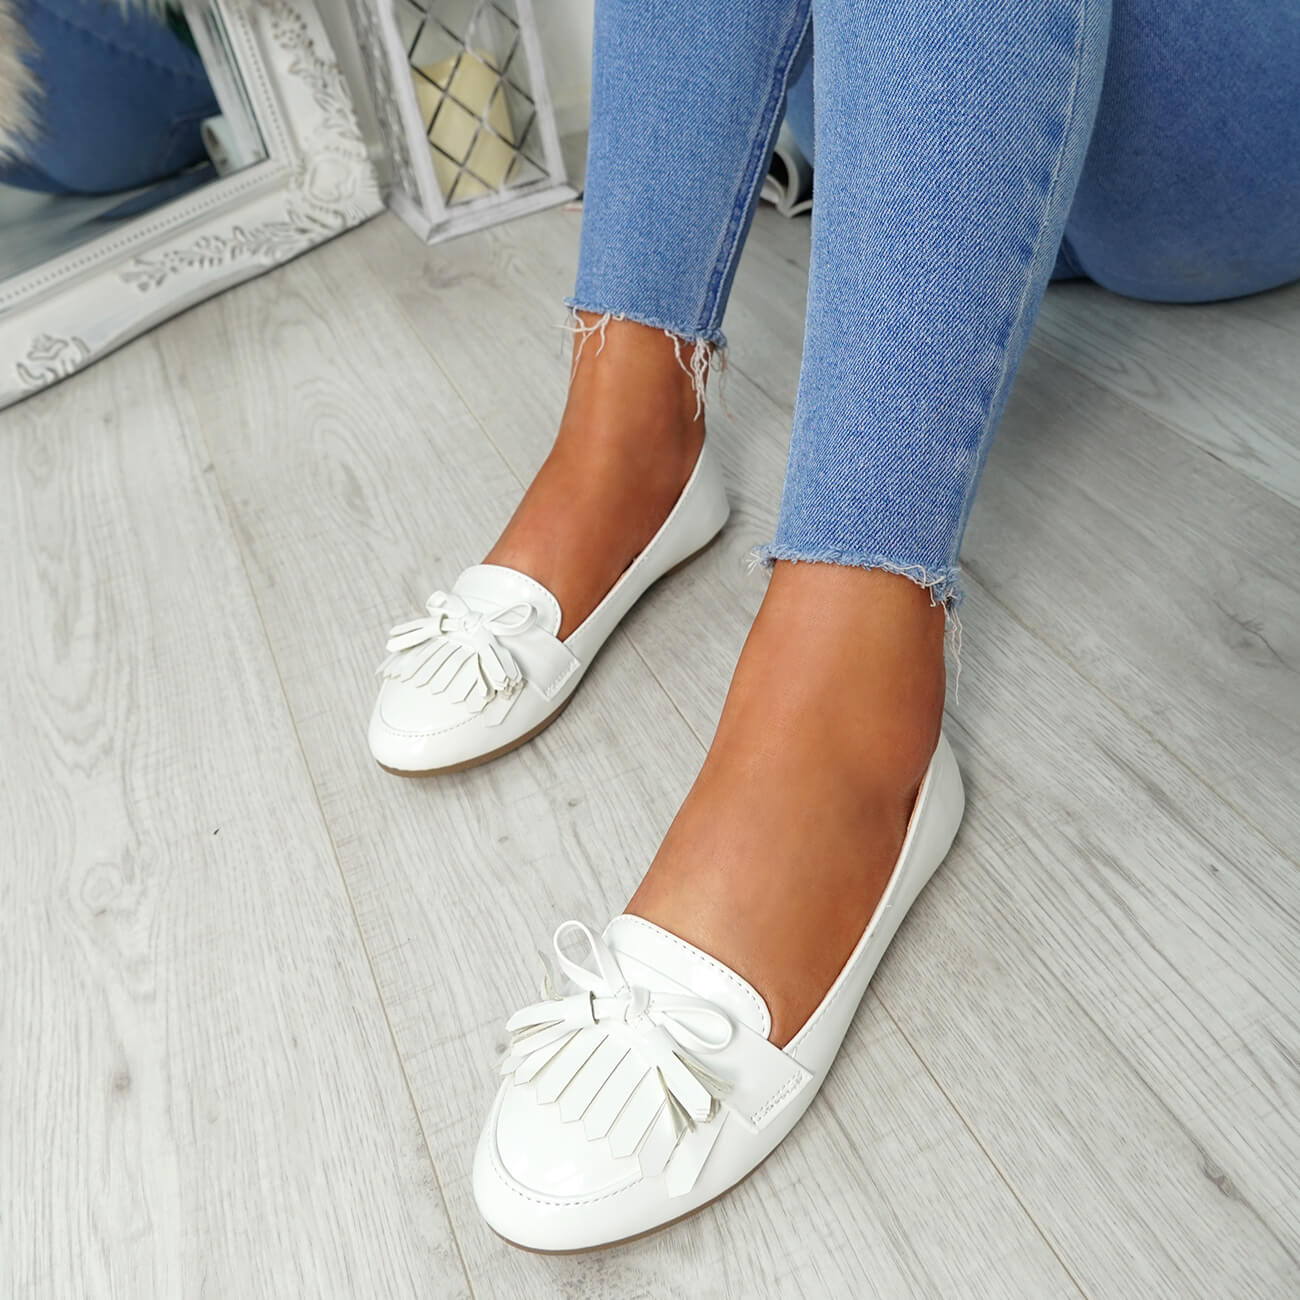 WOMENS-LADIES-FRINGE-BALLERINAS-SLIP-ON-FLAT-DOLLY-PUMPS-CASUAL-SMART-SHOES-SIZE thumbnail 34